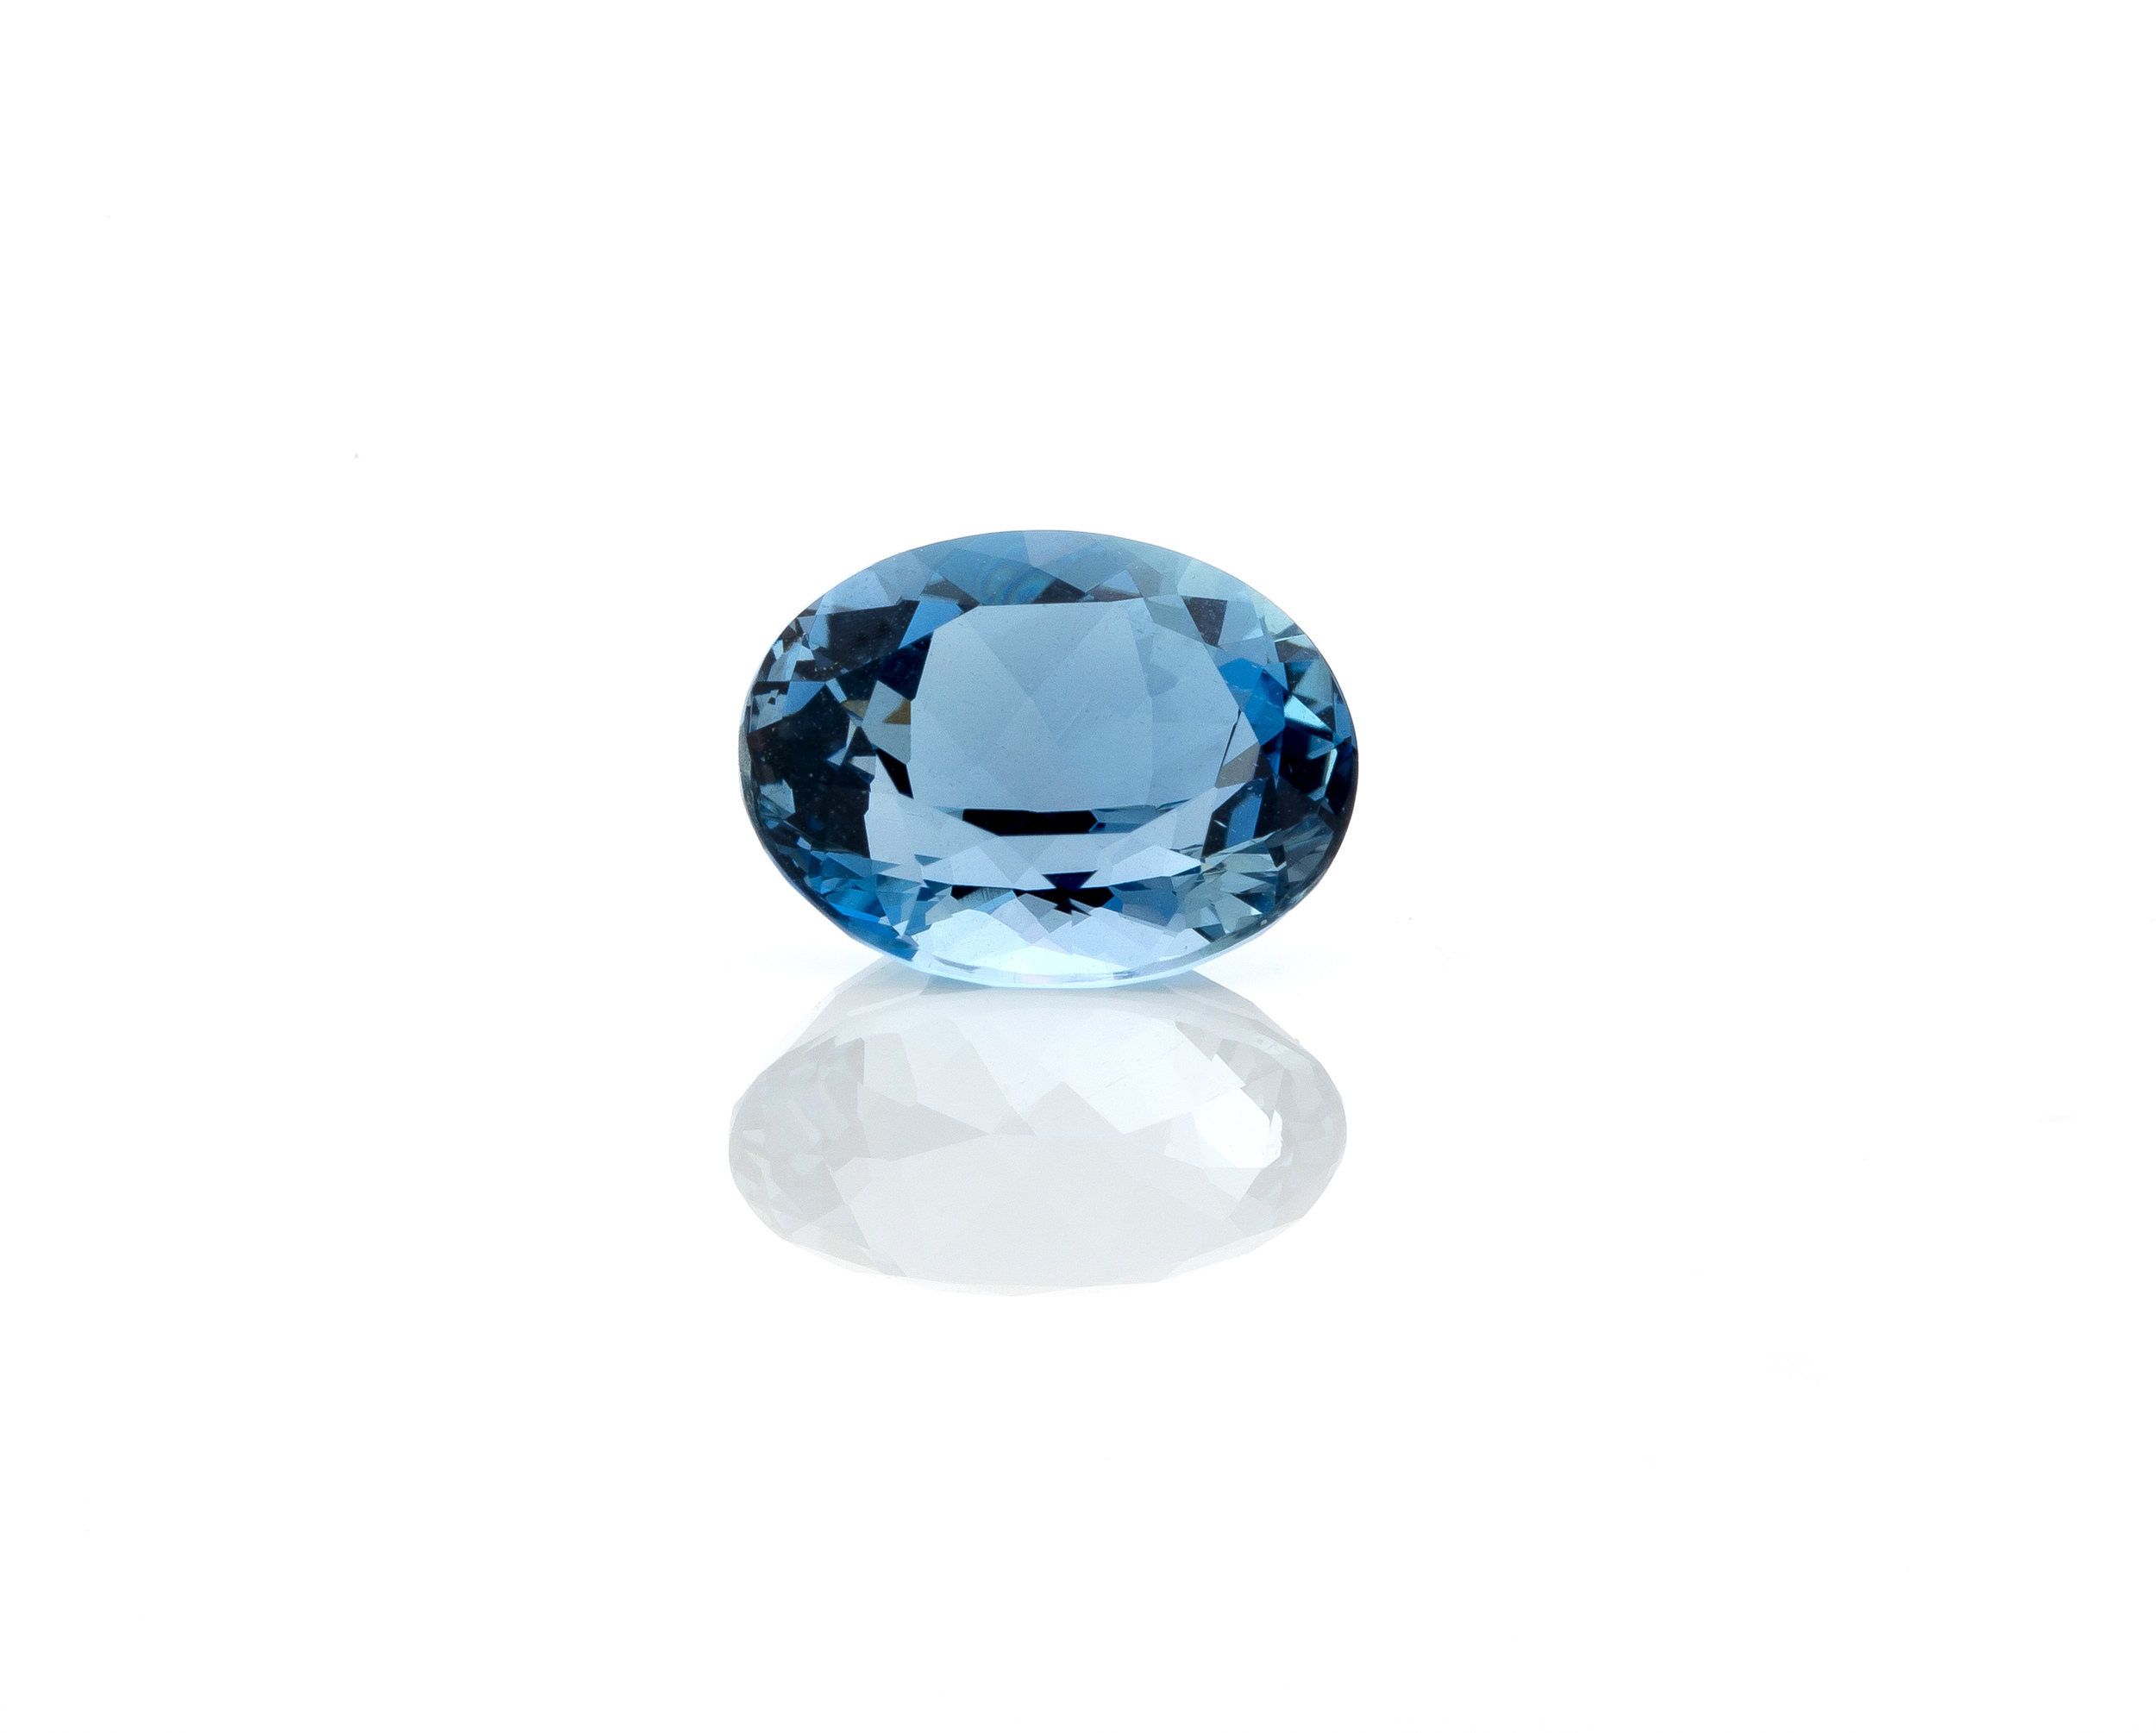 """One of the rarest and most expensive varieties of aquamarine are gemstones with a deeply saturated blue , color beryl known as """"Santa Maria."""" They are named in honor of Santa Maria de Itabira, which is the site in Brazil where the first such stones were discovered in the 1950s."""